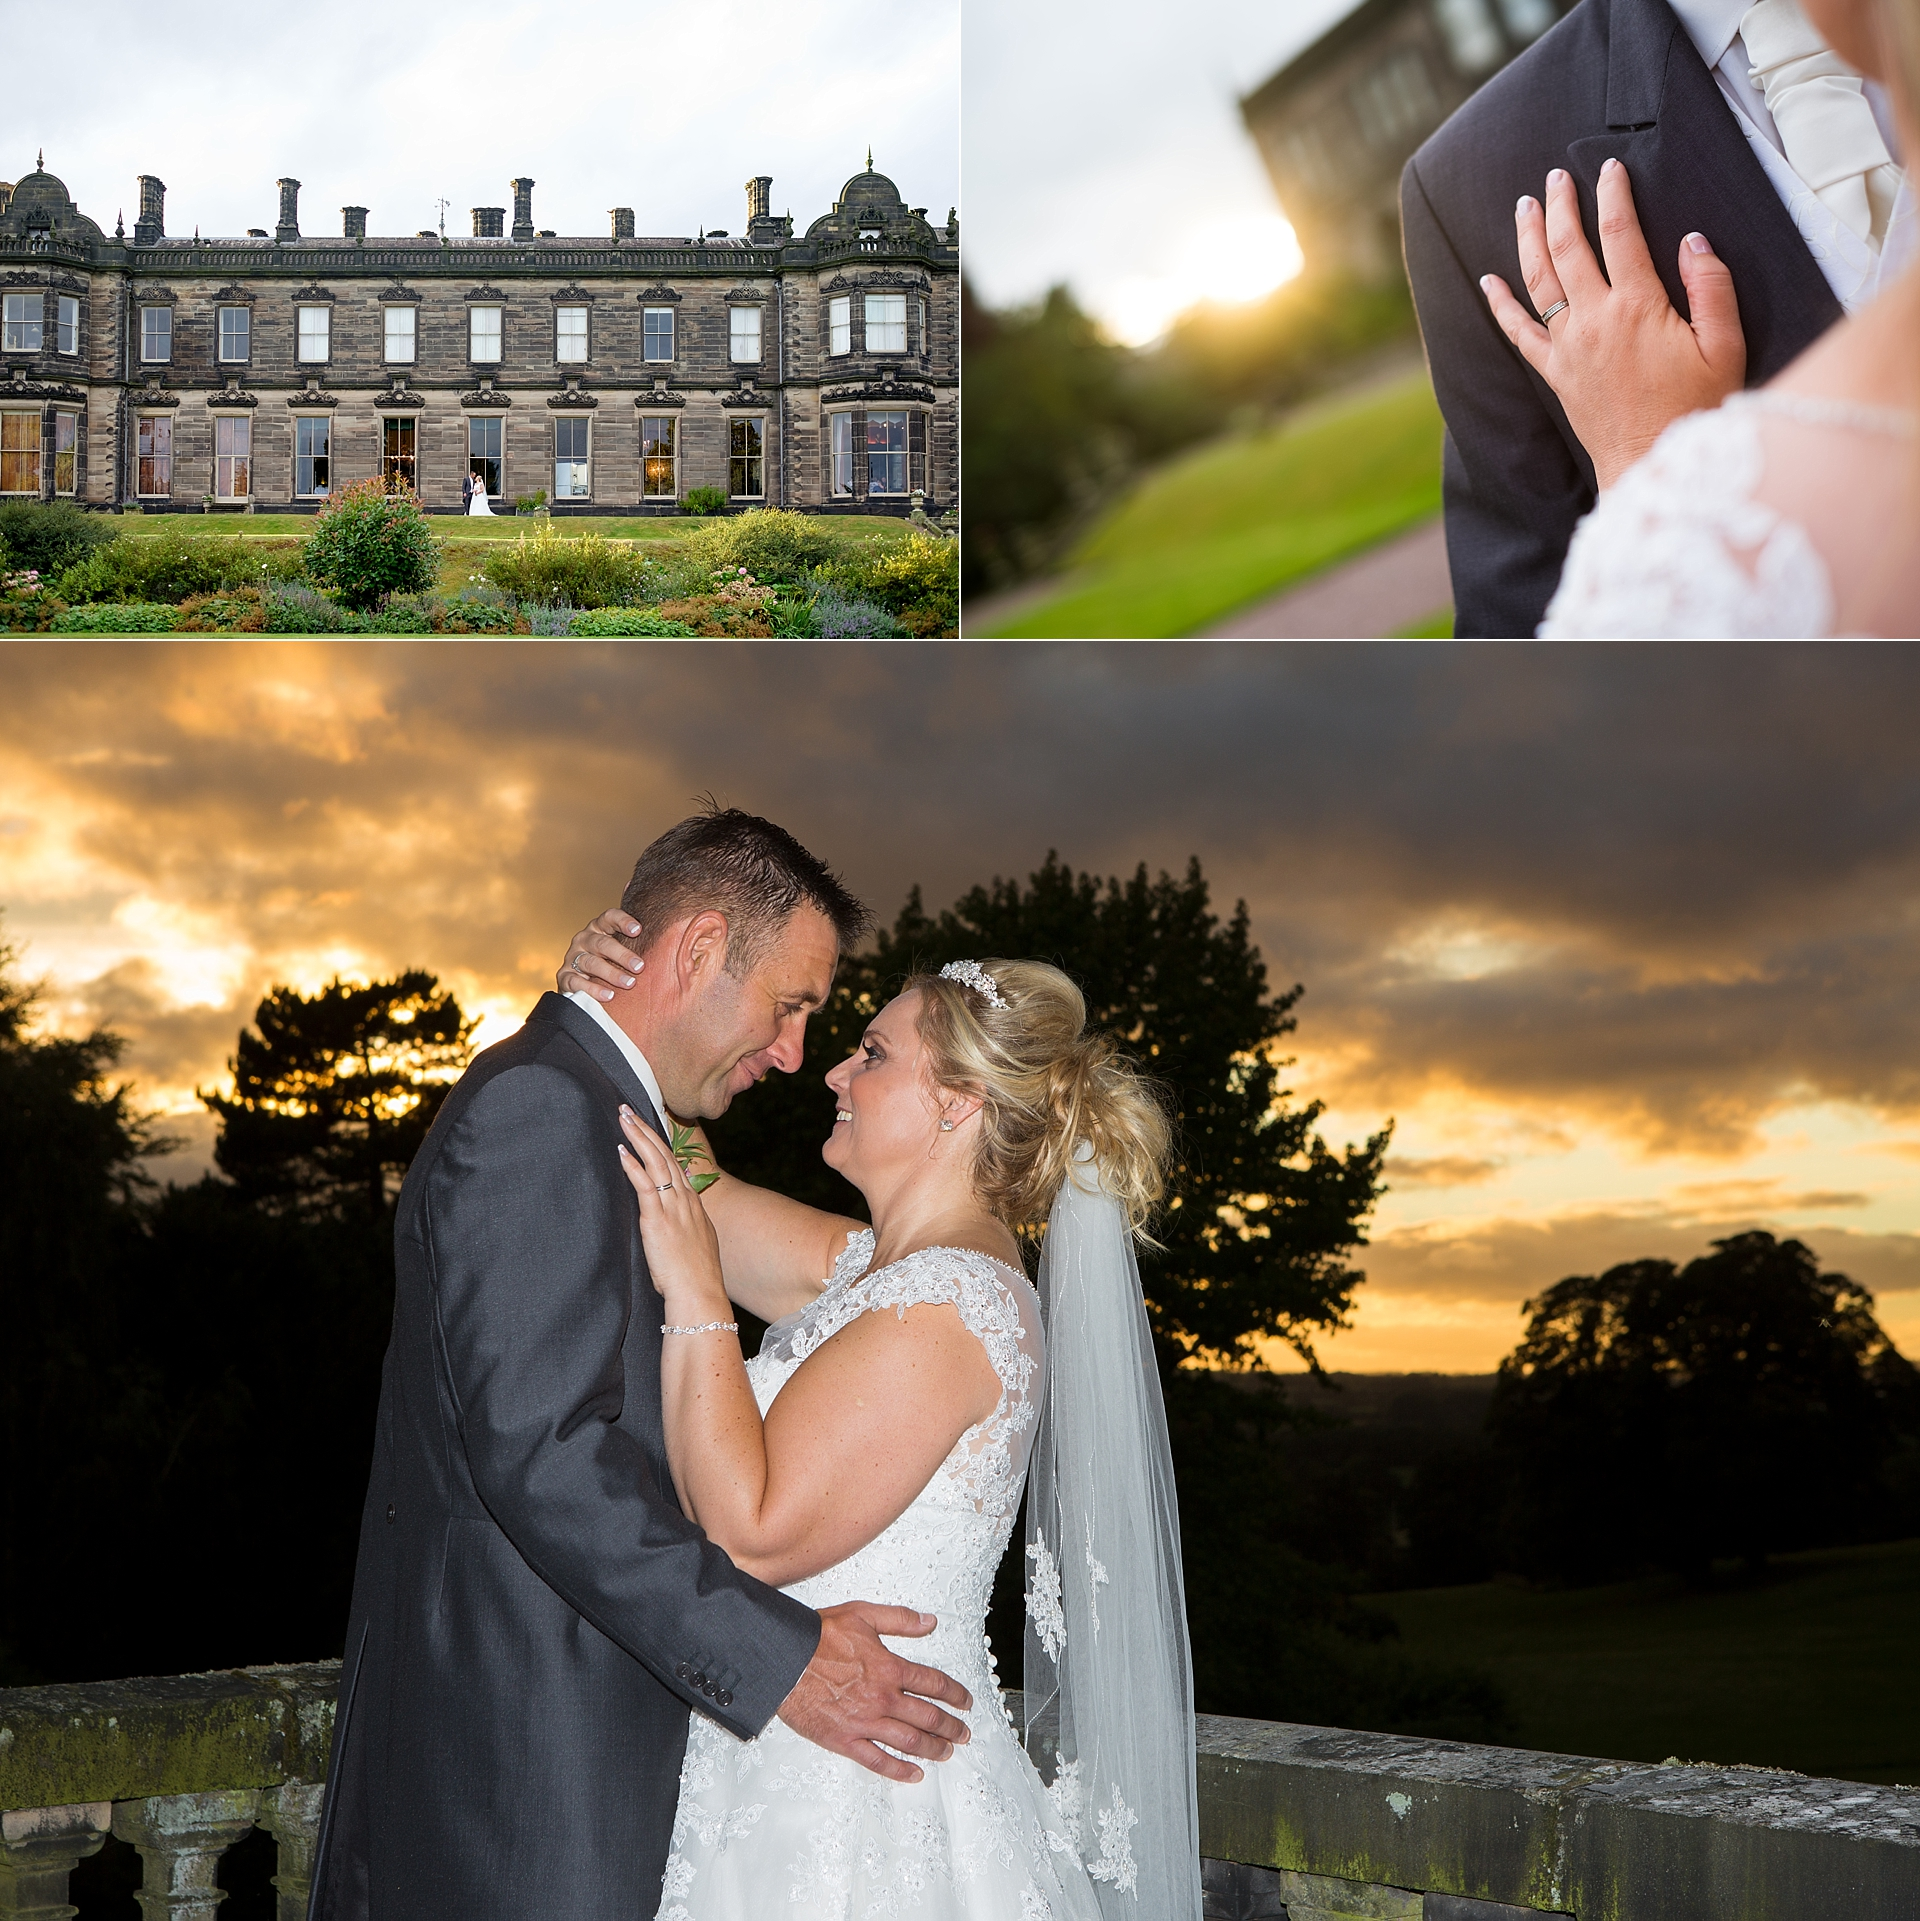 wedding photographer sandon hall stoke 15.jpg